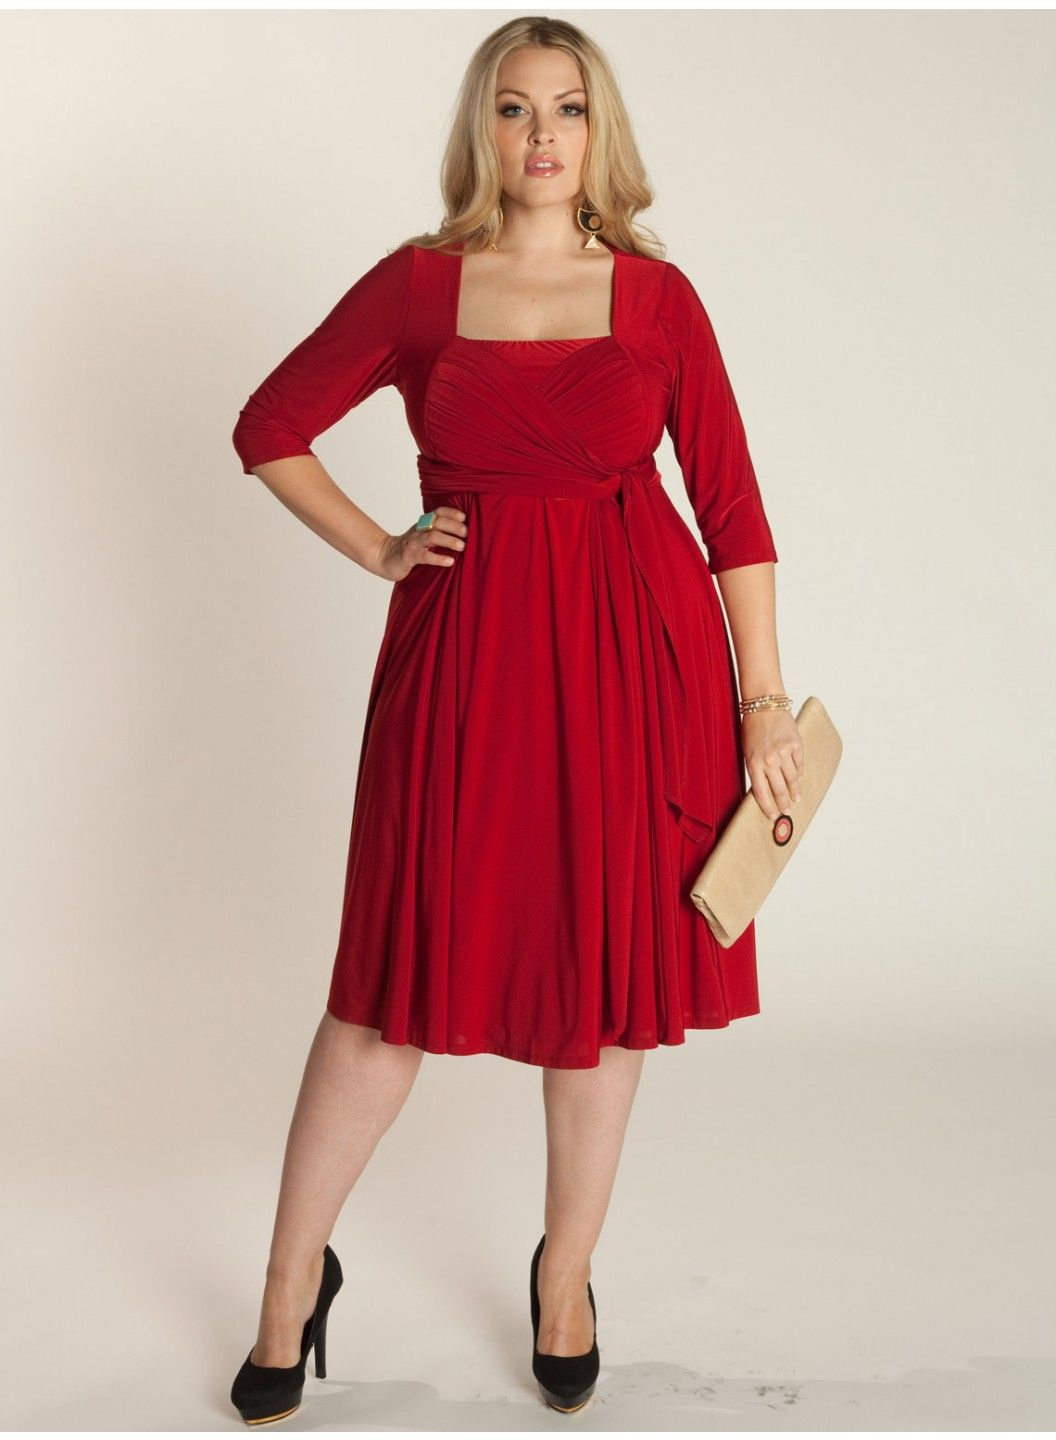 Sexy Red Curve Skimming dress of #IGIGI_Ninelle made for #pluzsize. $120.00